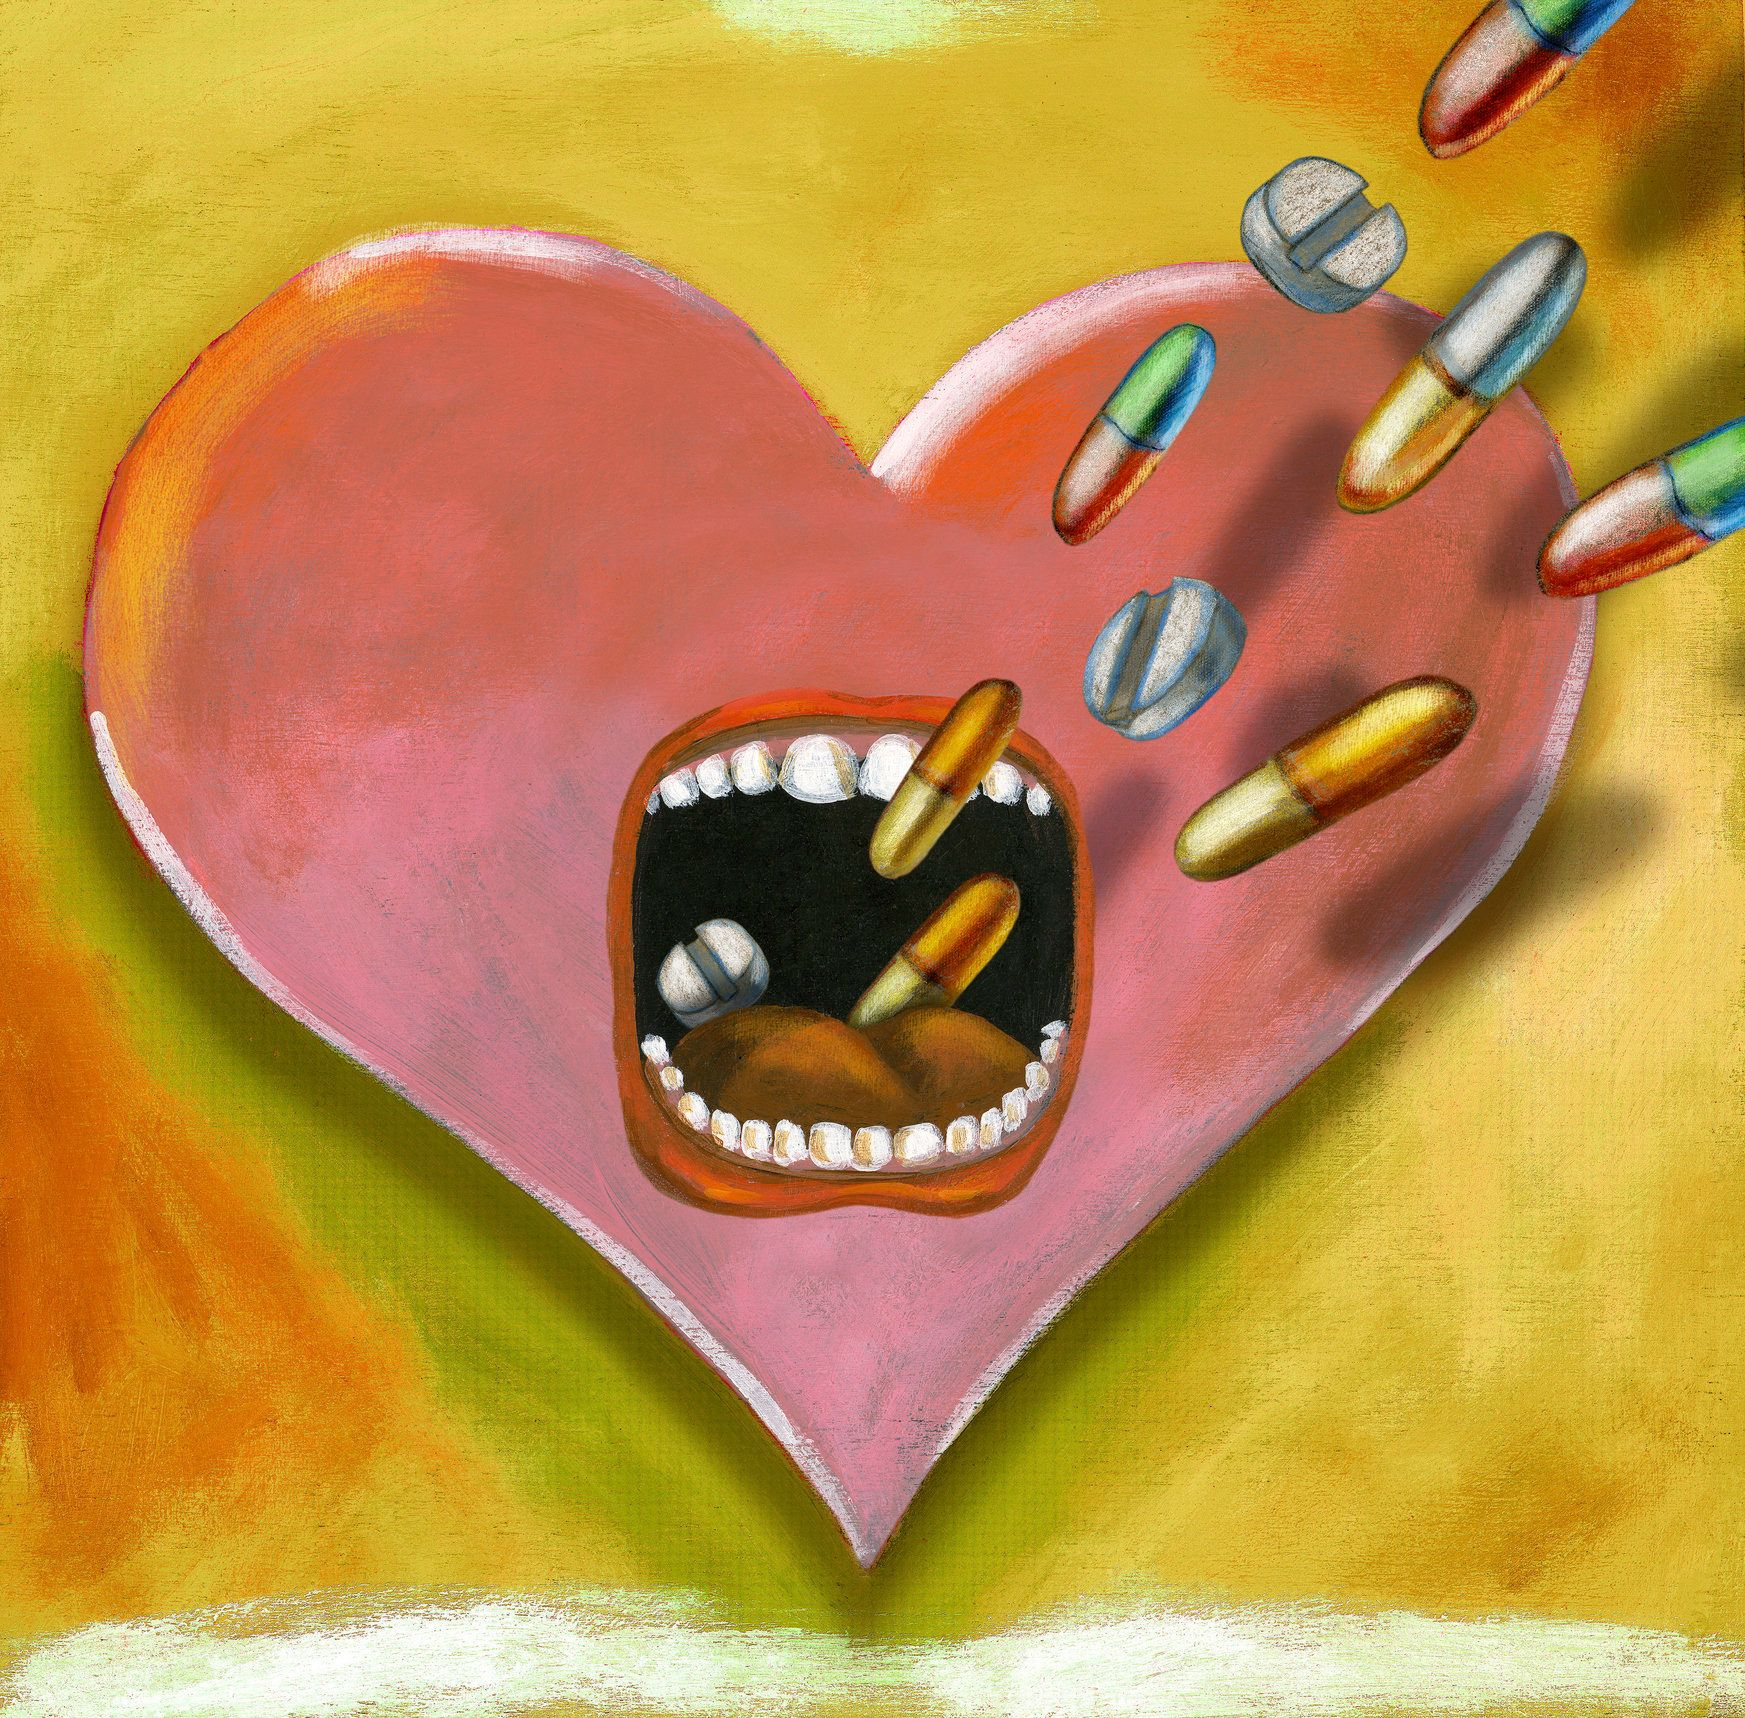 A heart taking medication